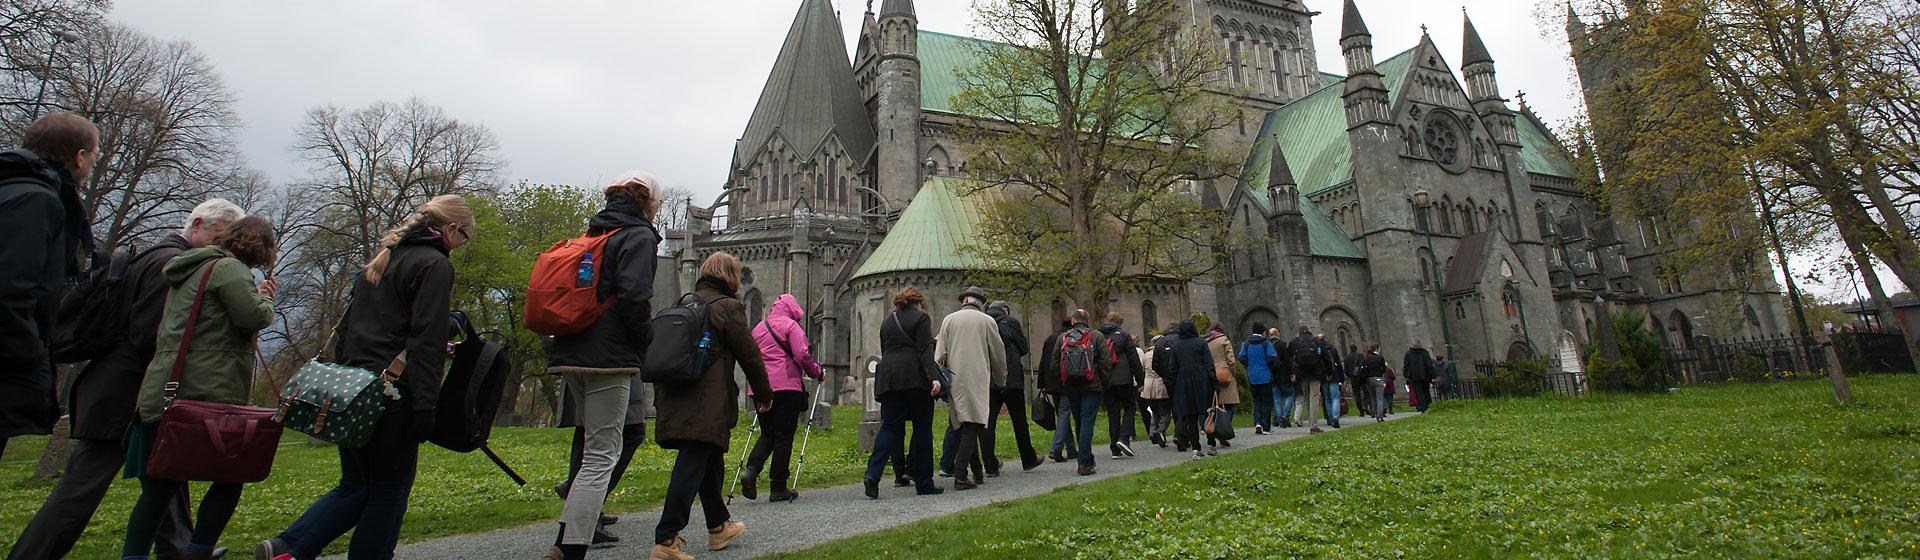 Attendees of 2015 consultation in Trondheim, Norway, make their way toward a church